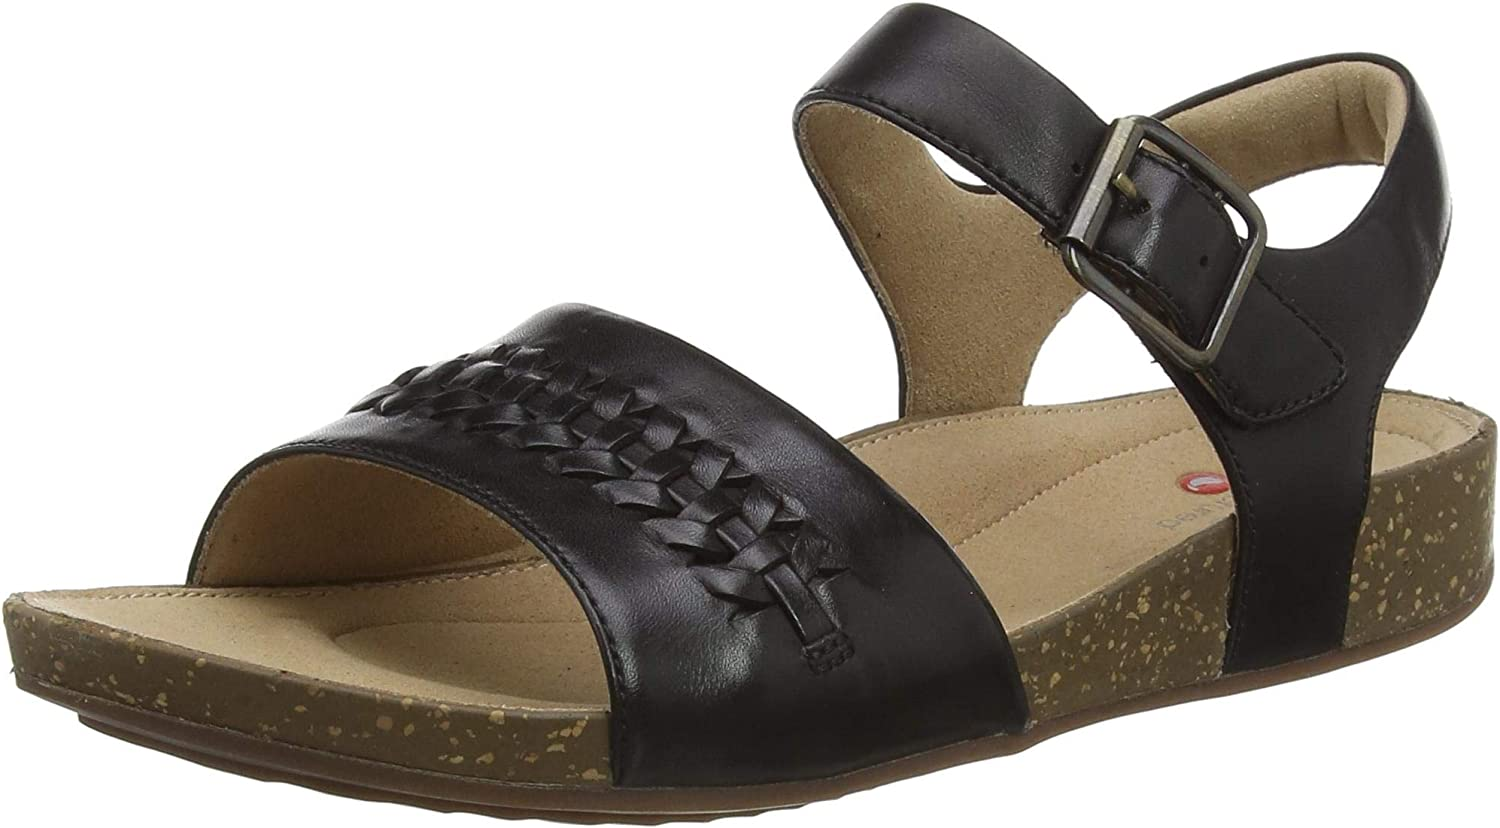 Clarks Women's Un Perri Way Sling 5% OFF Grey Free shipping on posting reviews Sandals Leat Back Stone